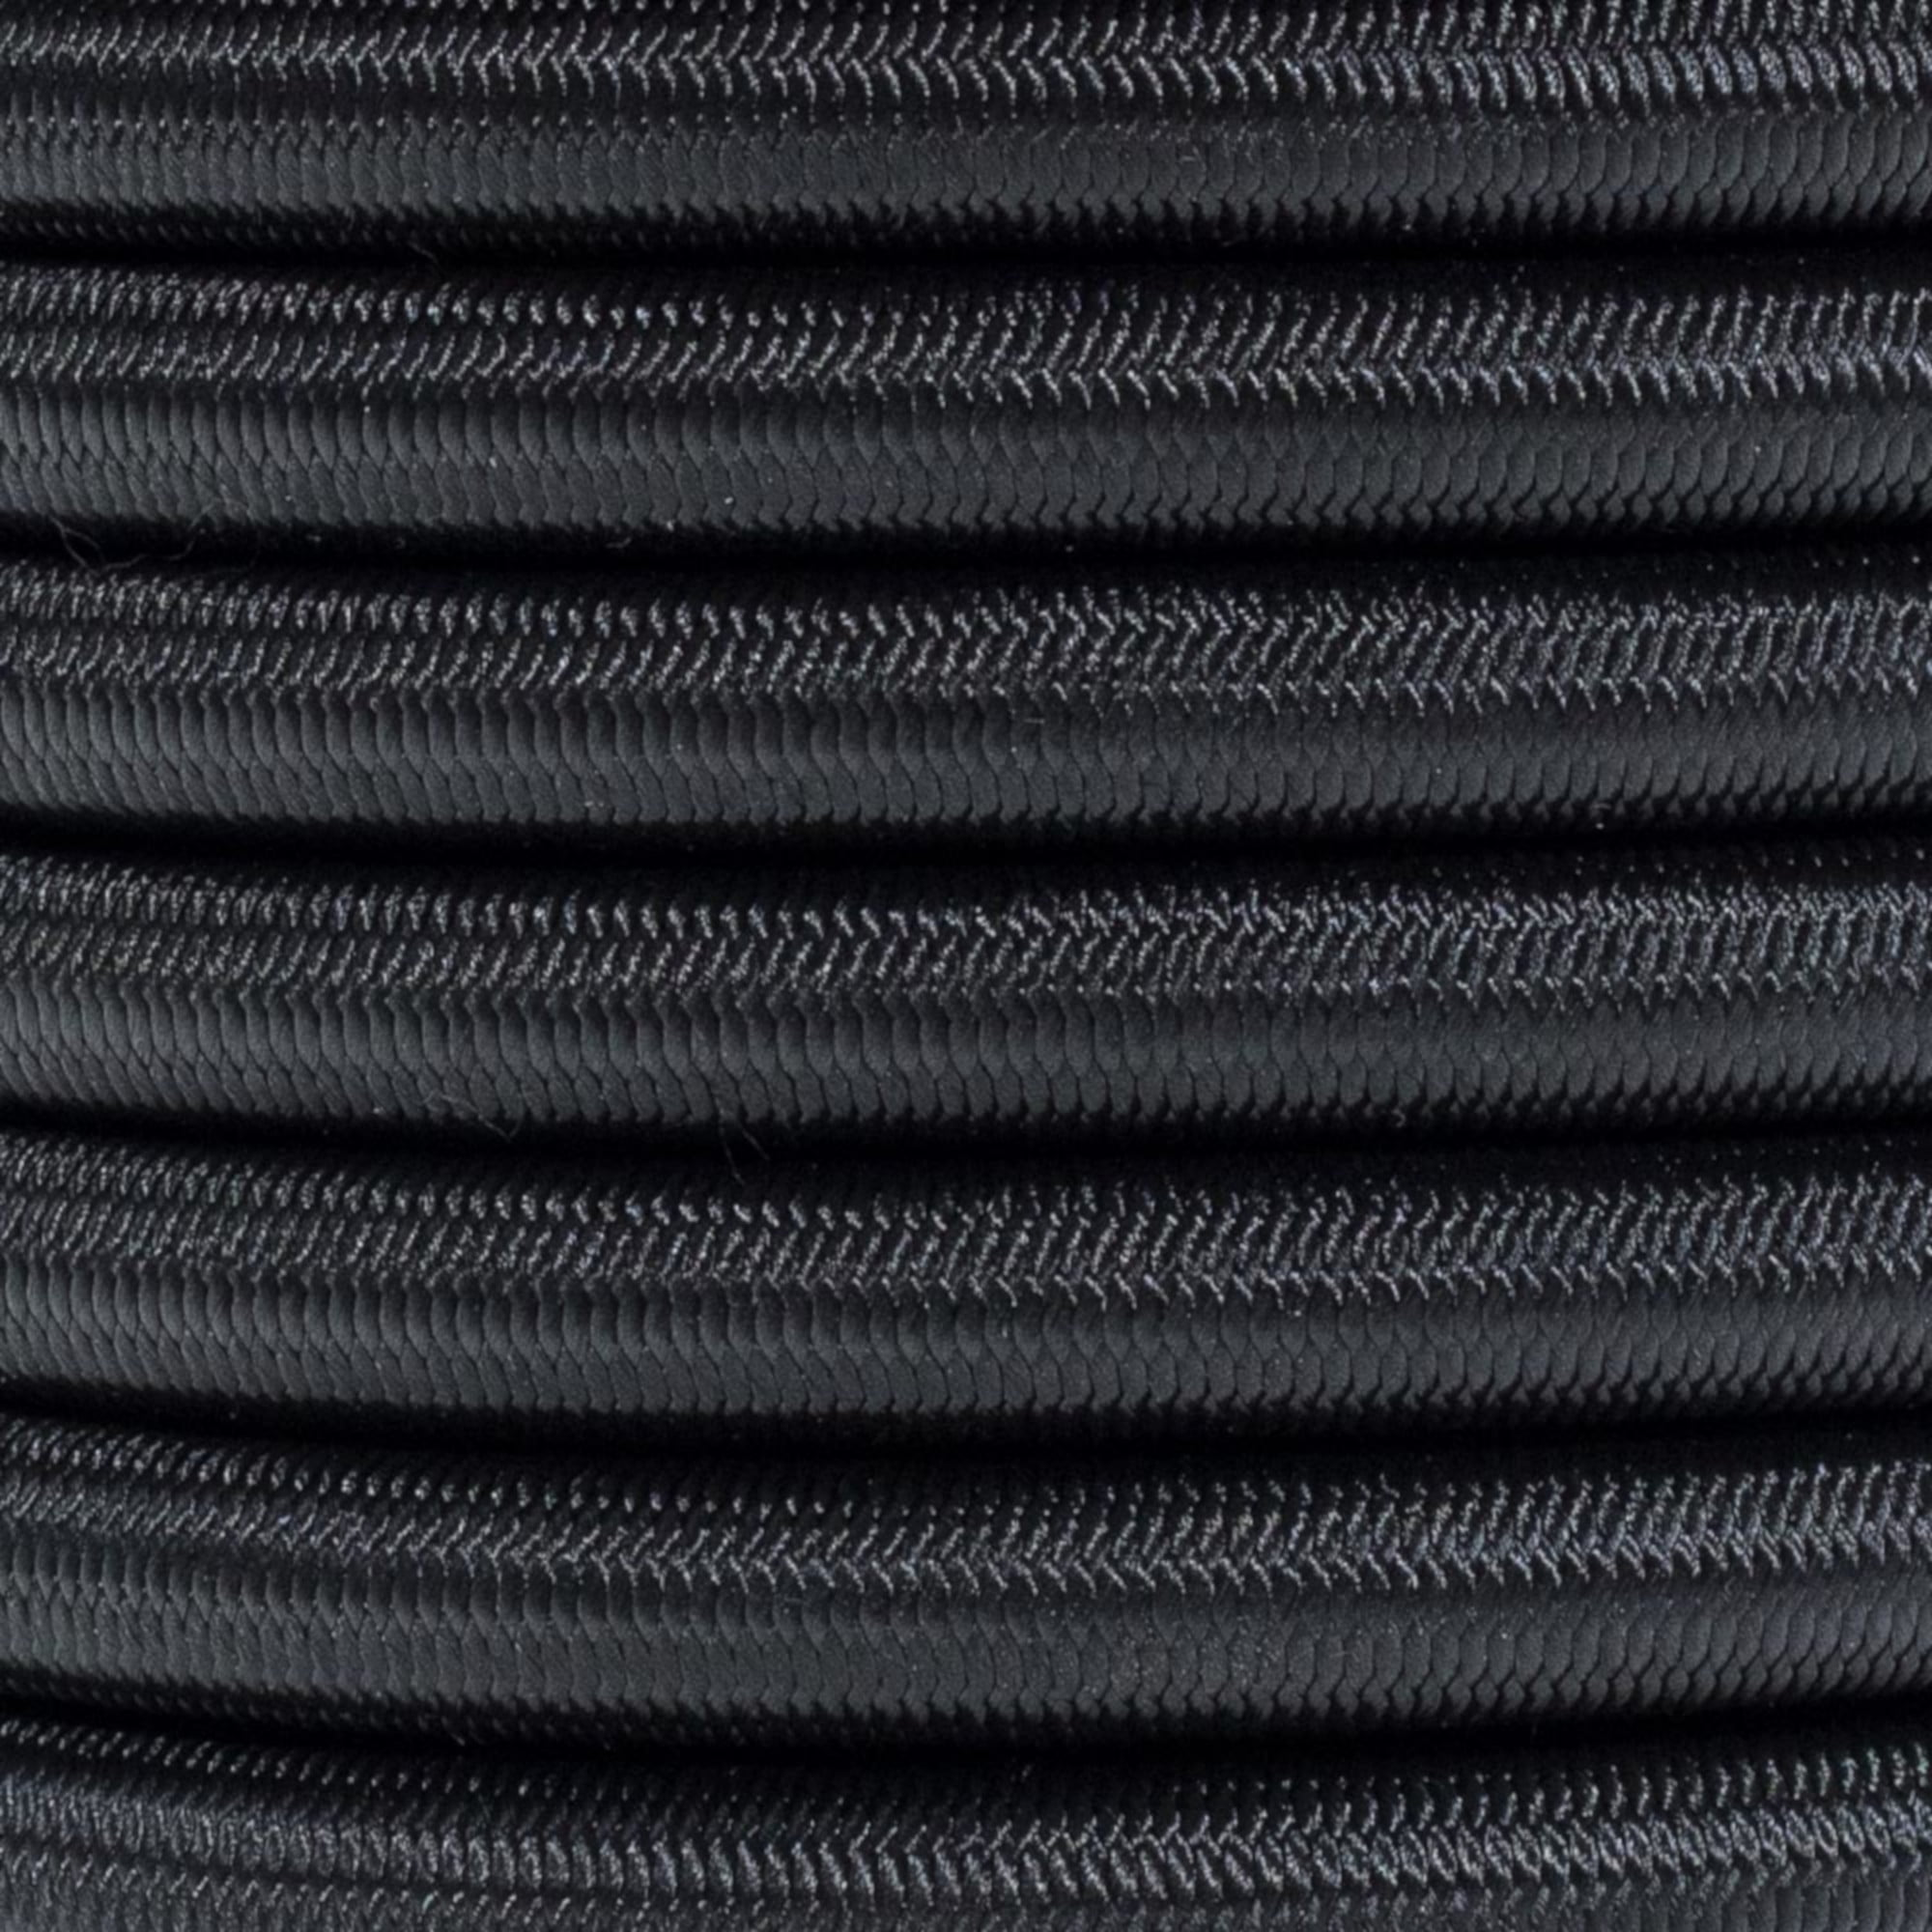 10 25 Bungee Cord 50 Ellipse Cord Locks for Paracord Drawstrings Holds up to 1//4 Inch of Cord or String and More or 100 pc Pack Sizes Backpacks Choose from 5